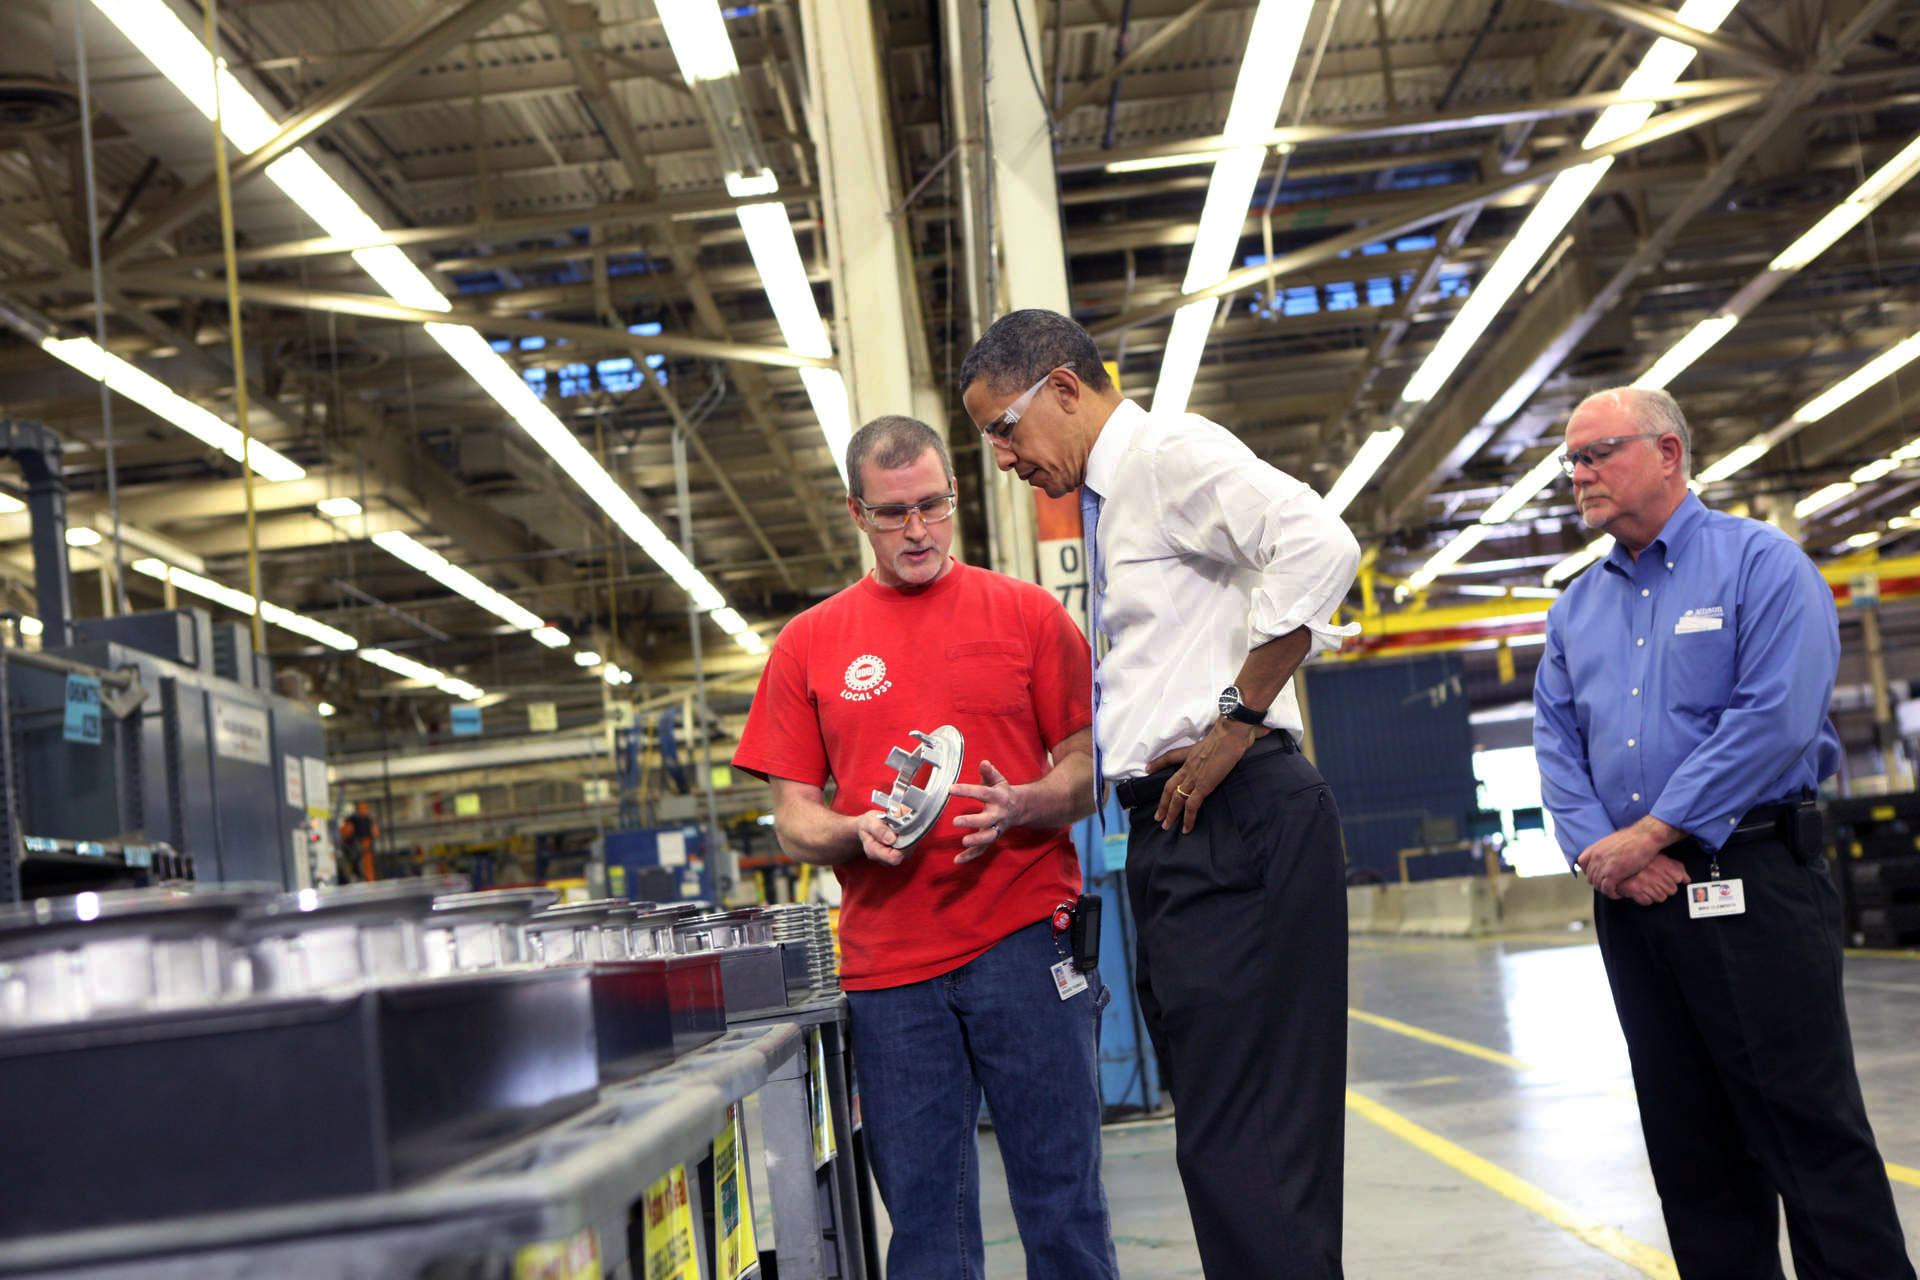 President Barack Obama Examines a Part During a Tour of Allison Transmission in Indianapolis, Indiana